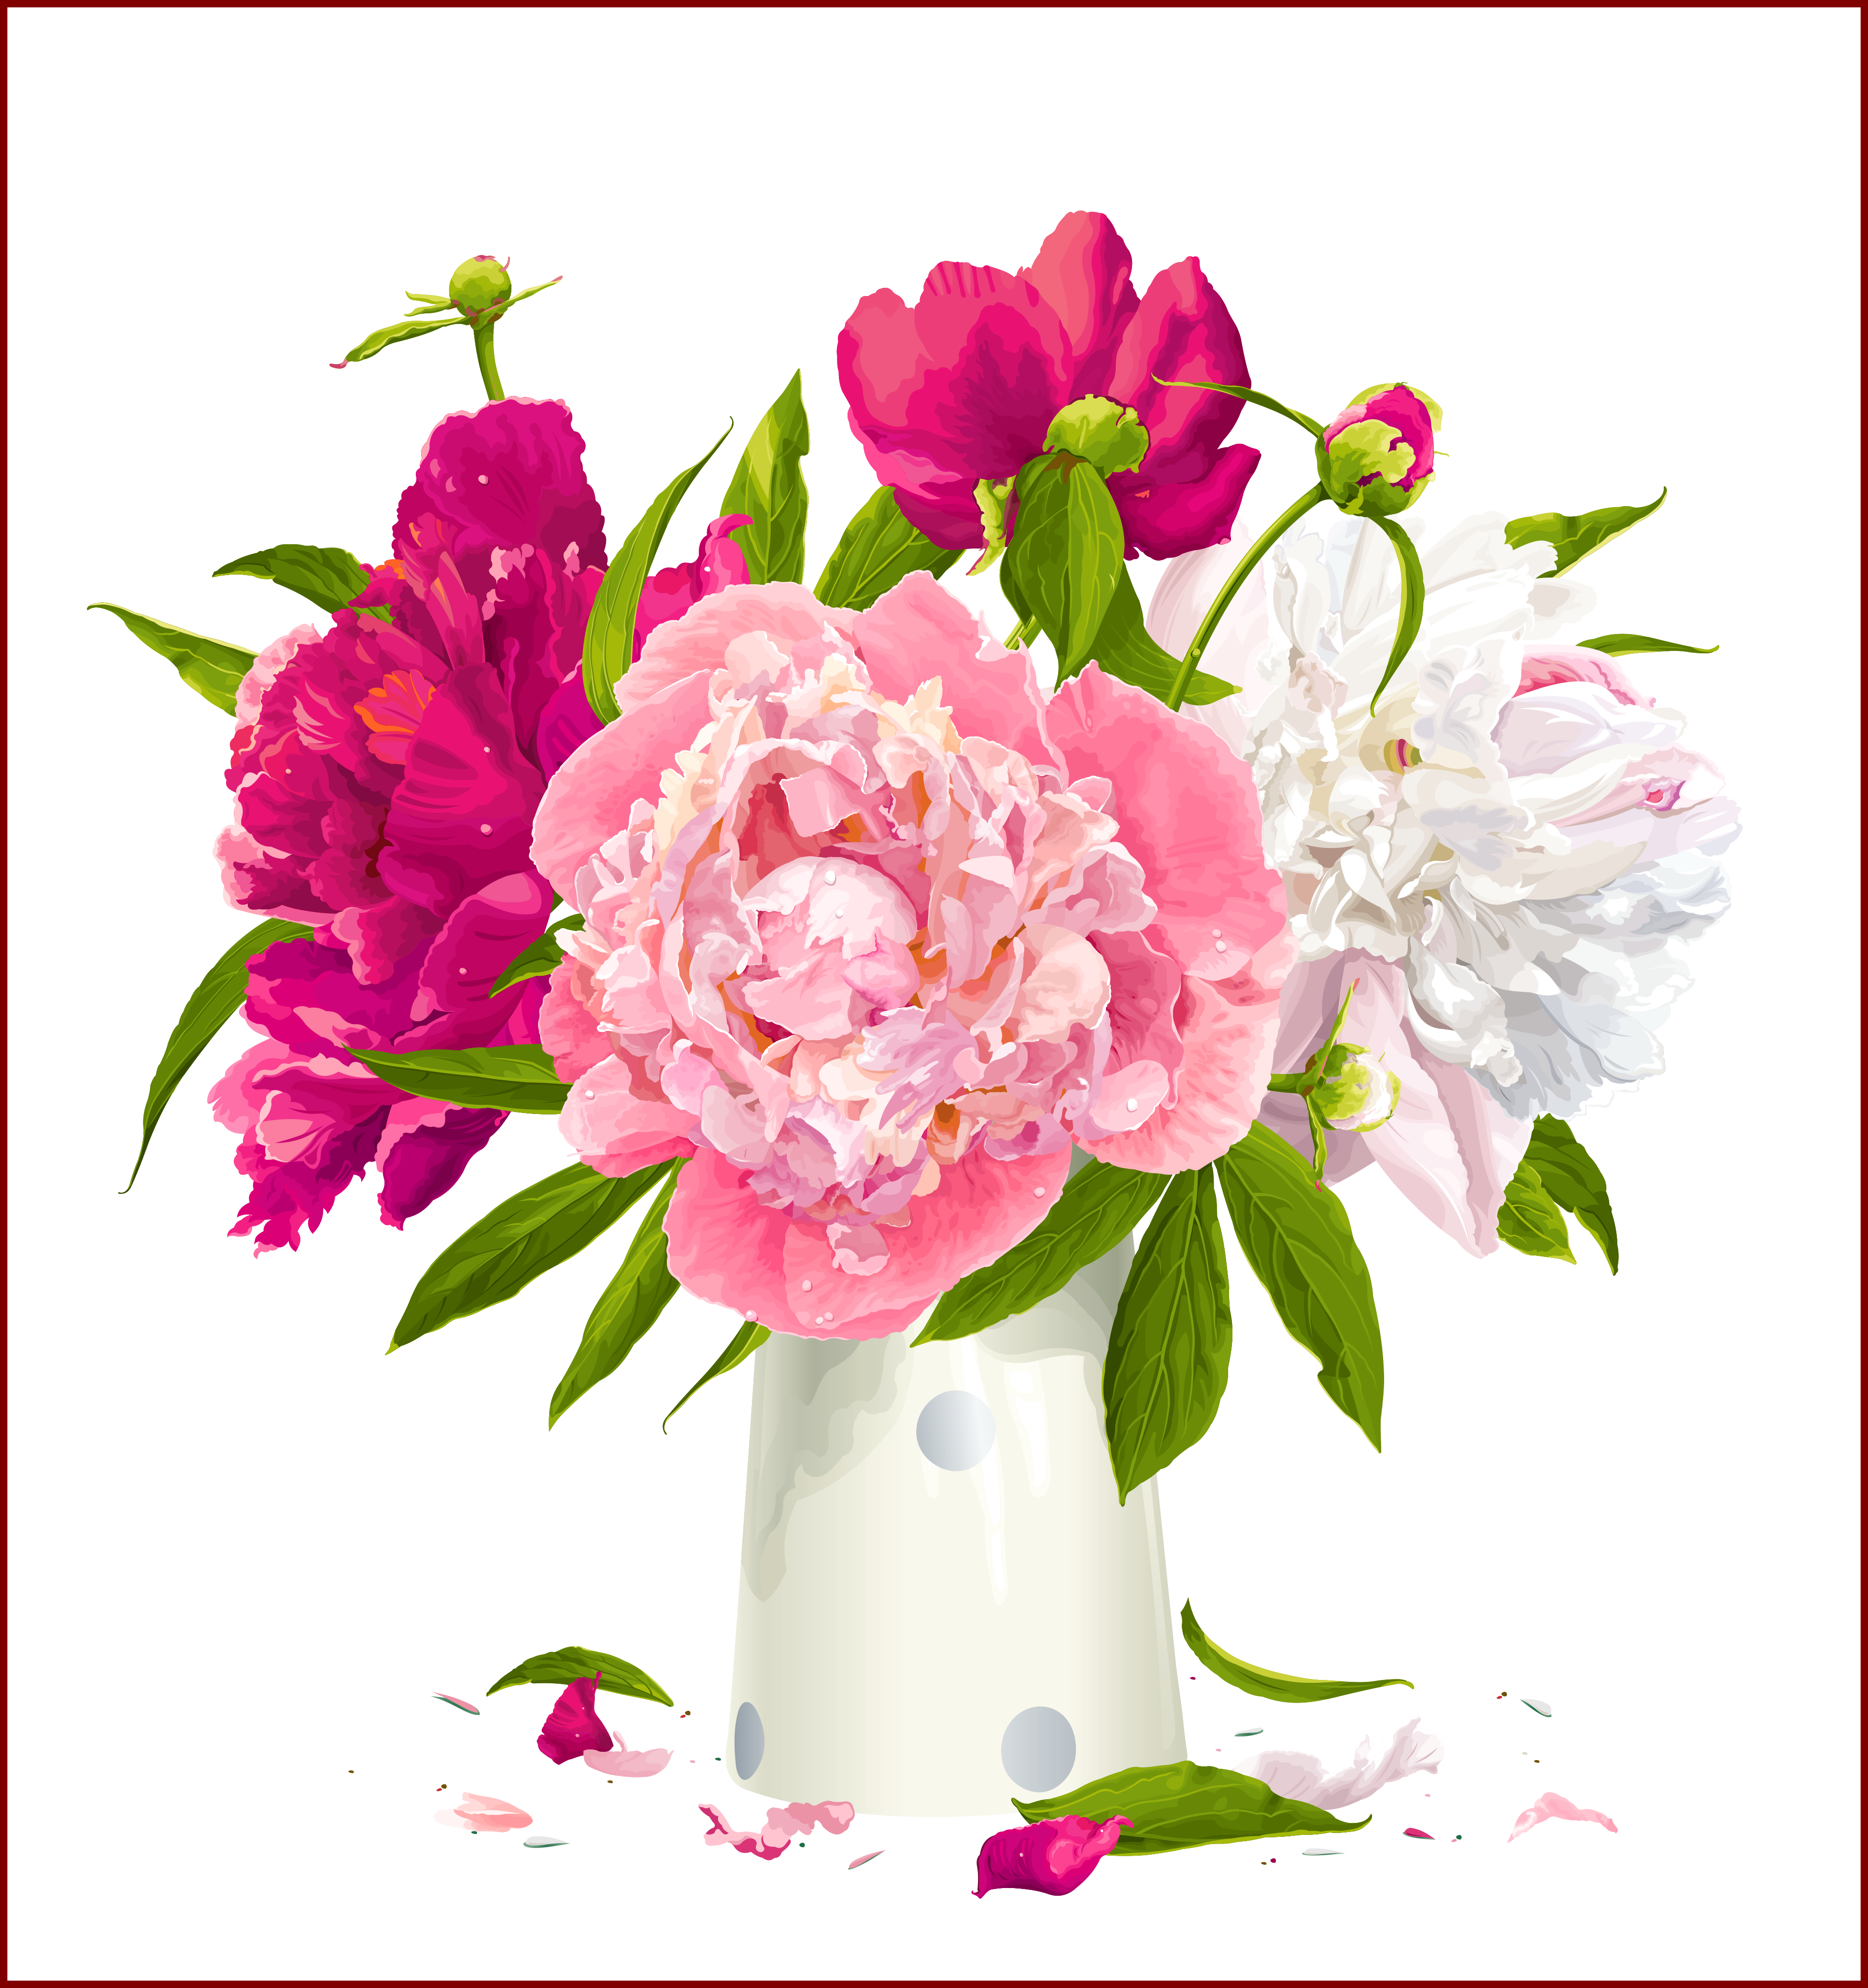 Boho flower clipart graphic freeuse download Incredible Peonies Clip Art On Pics For Peony Flowers Clipart ... graphic freeuse download